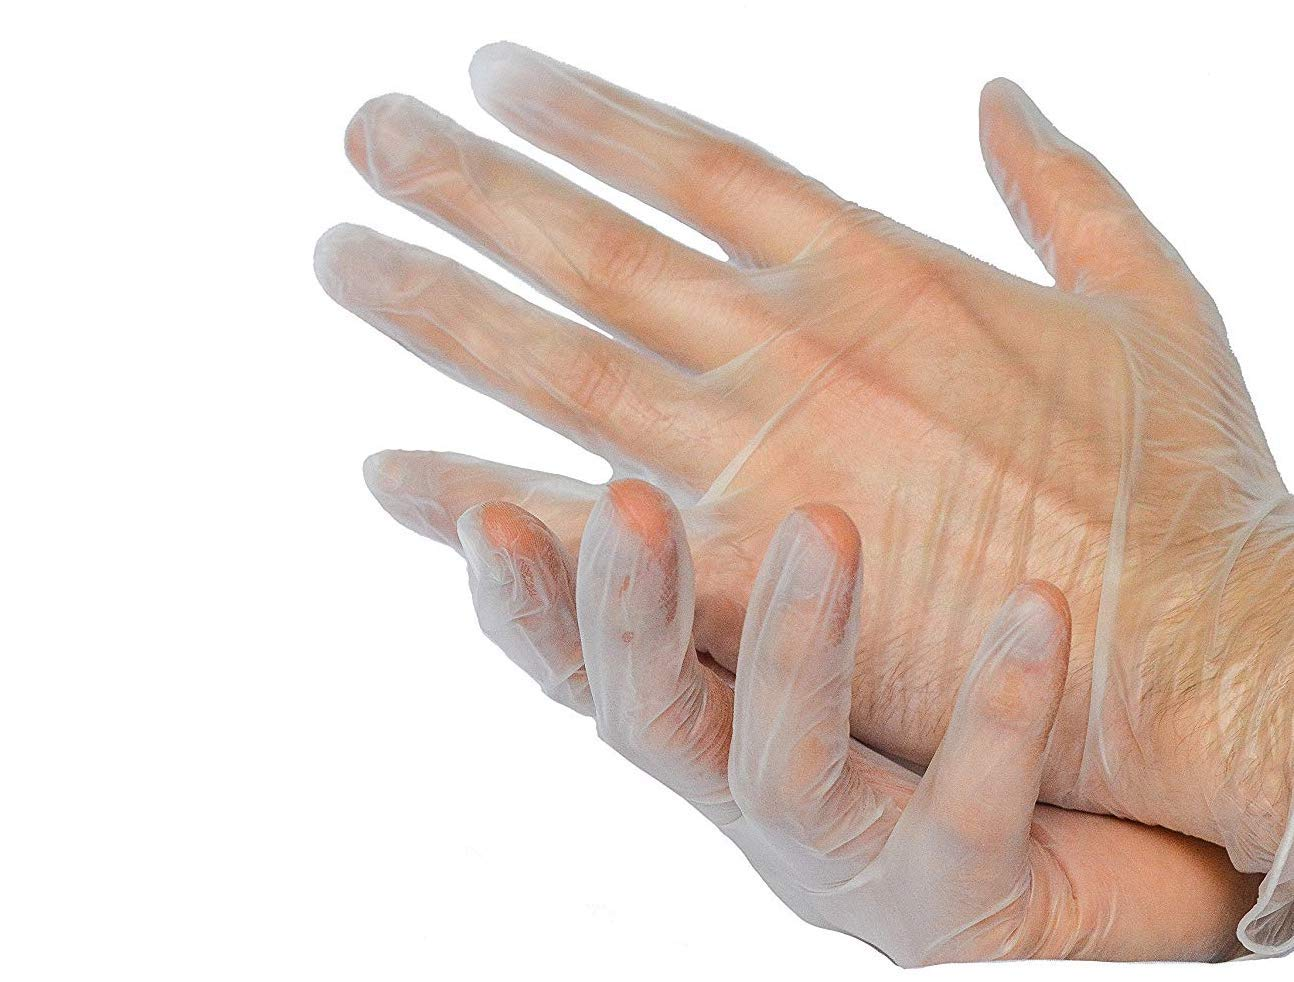 Disposable Vinyl Gloves Powder /& Latex Free Medical Exam Grade by P/&P Medical Surgical Hypoallergenic Highest Quality Medium Size M Box of 100 1